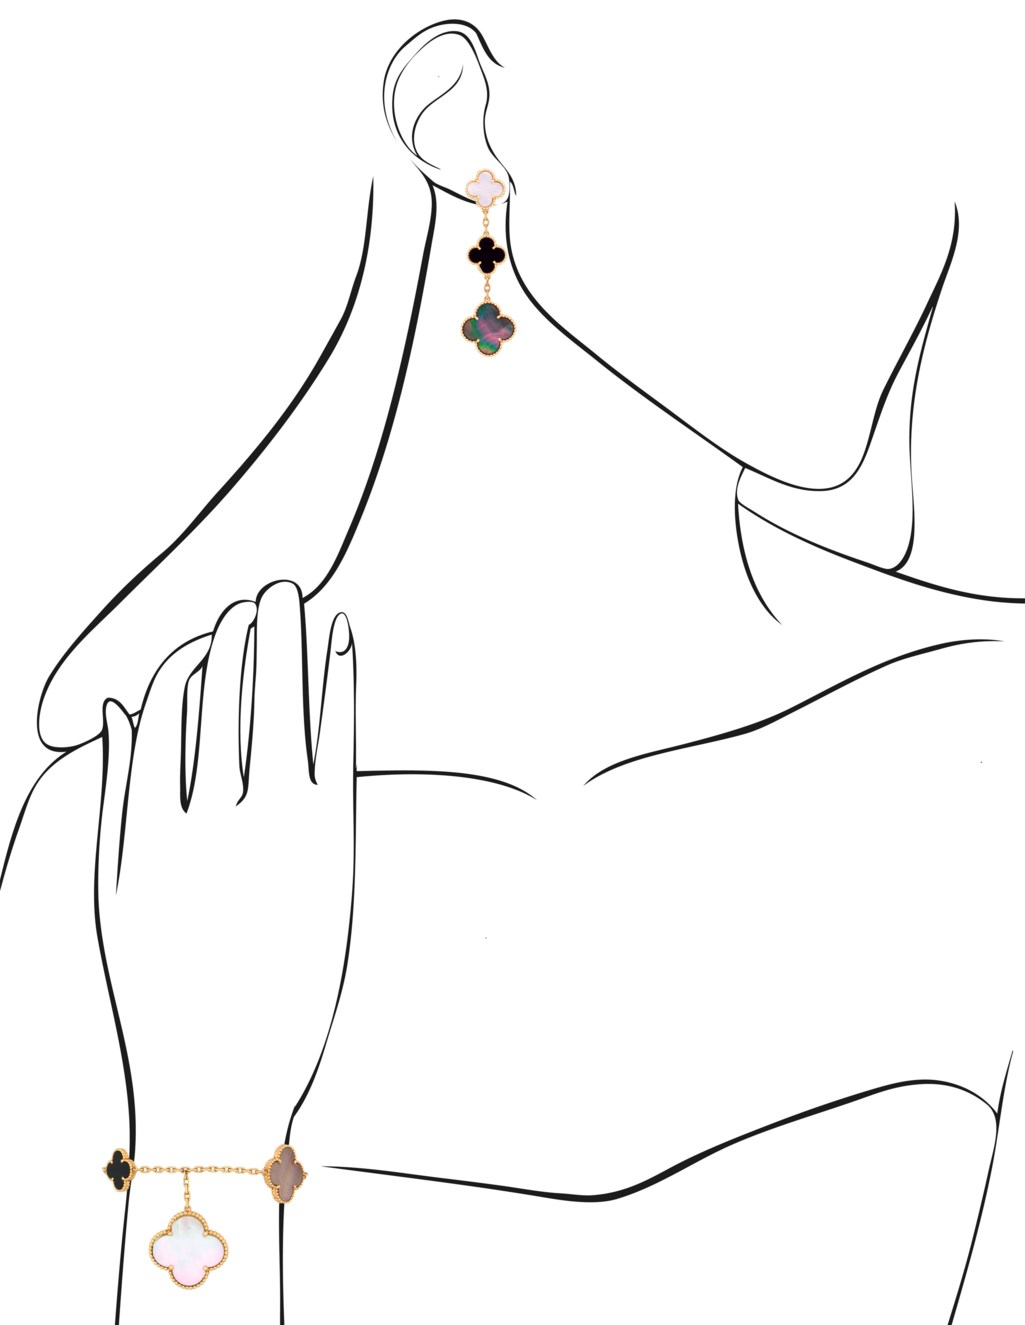 VAN CLEEF & ARPELS 'MAGIC ALHAMBRA' SET OF ONYX AND MOTHER-OF-PEARL JEWELLERY